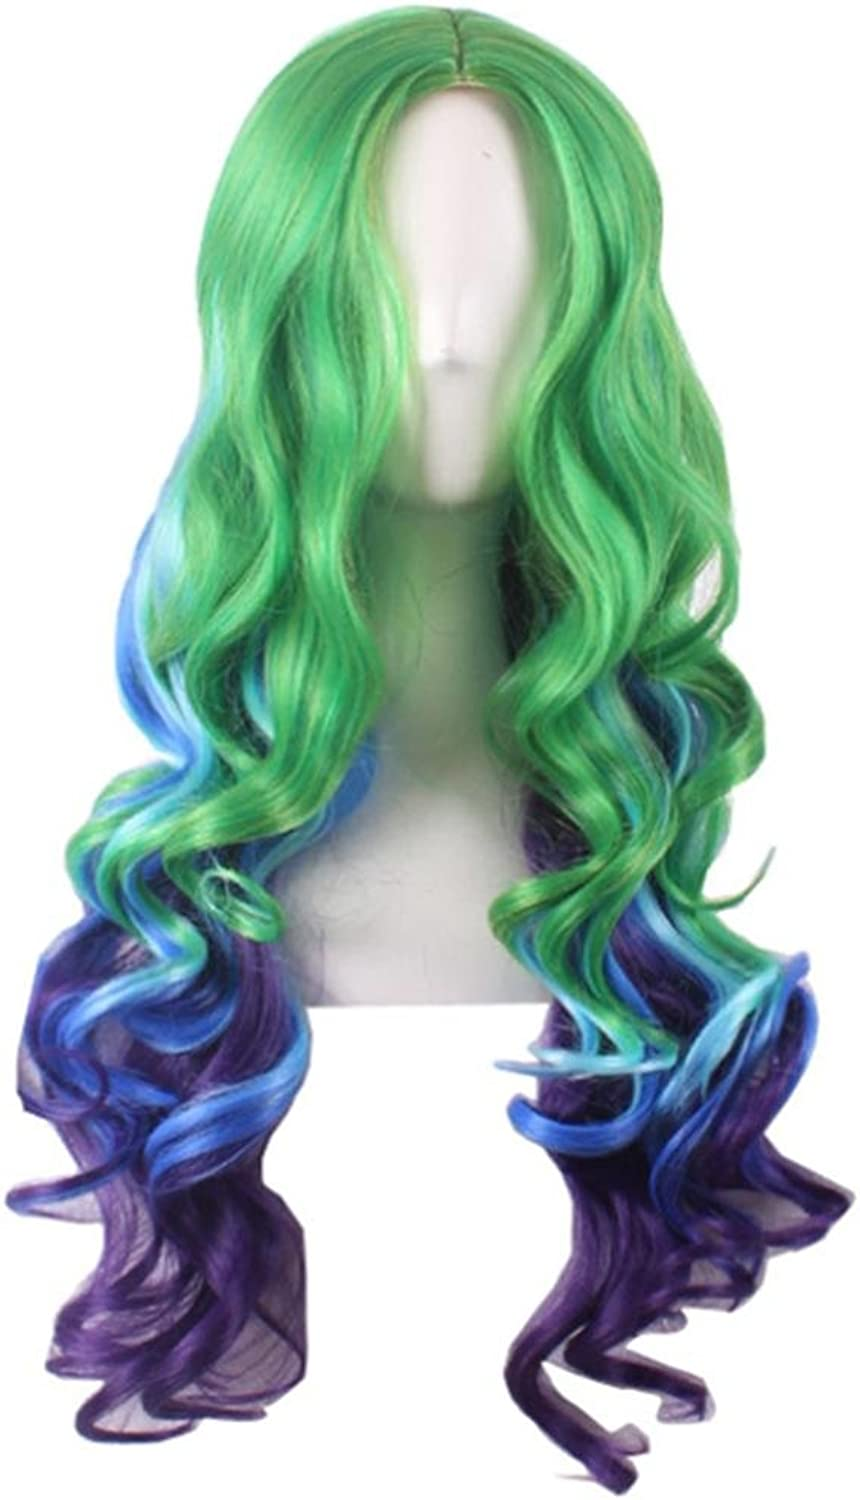 JIAFA Women Wigs Fashion Animation Cosplay Green bluee Gradient In The Long Section Of Wig